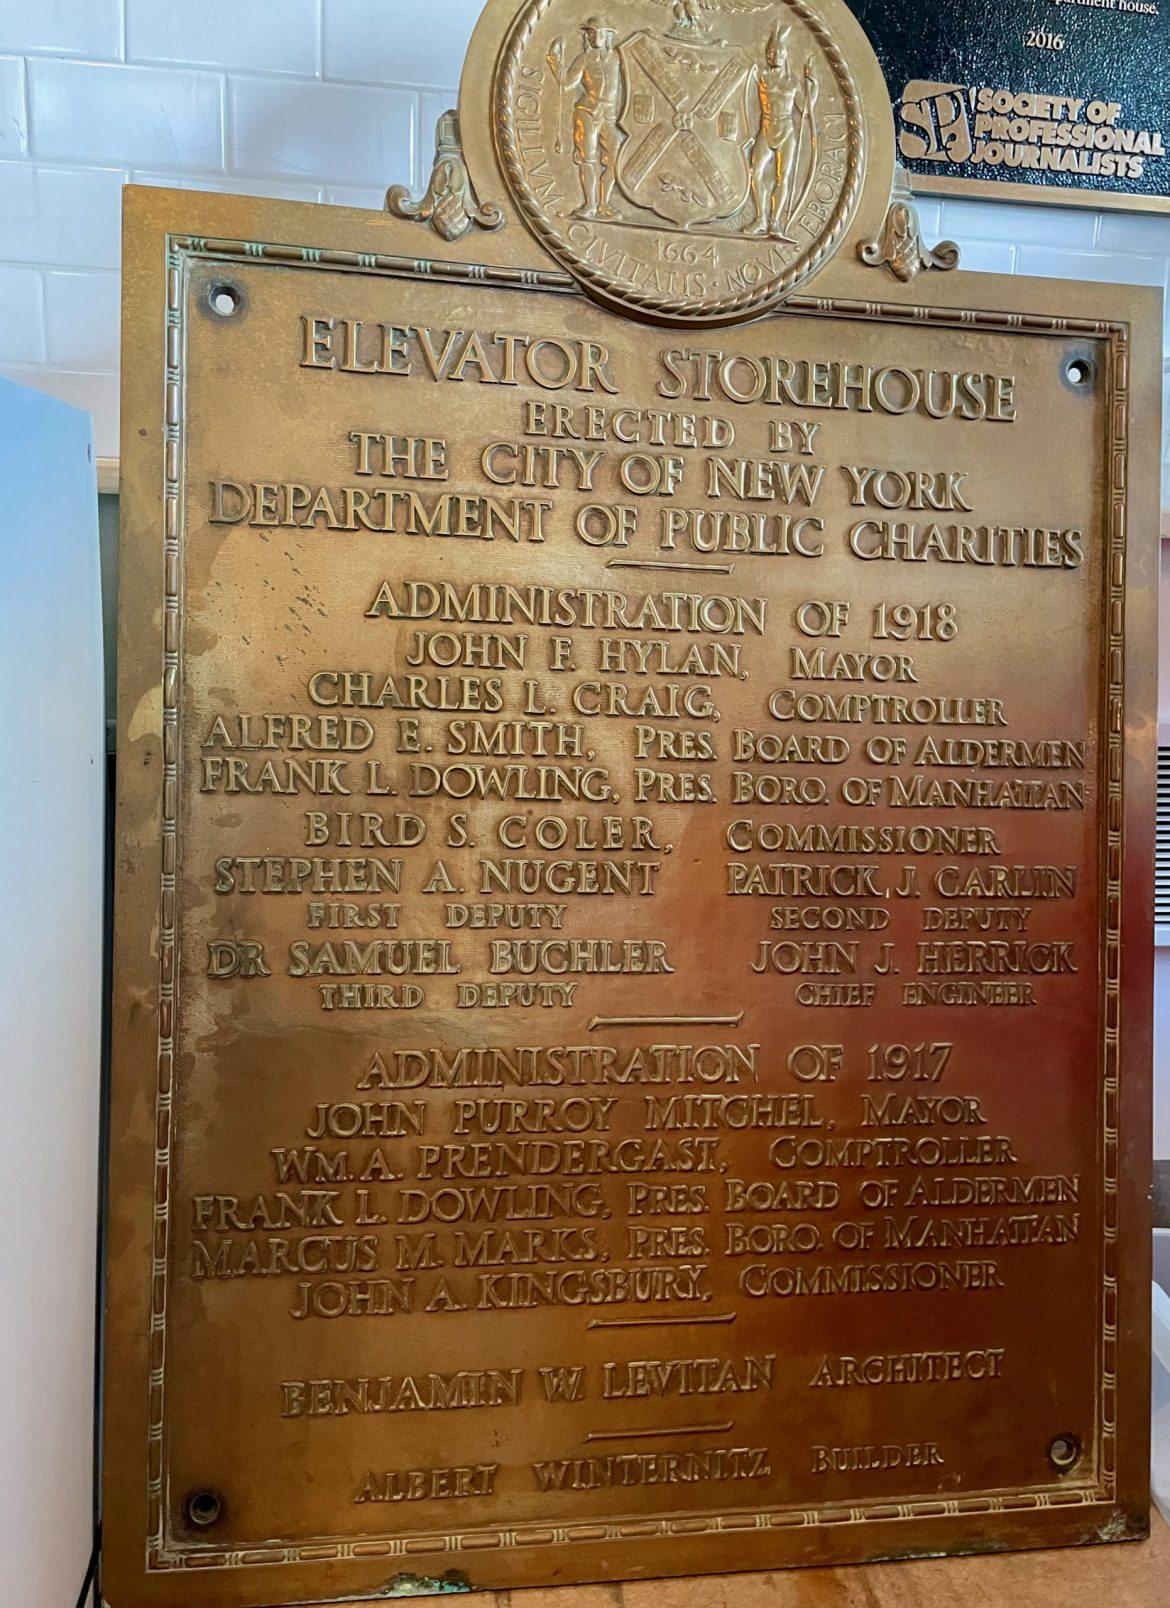 RIHS Returns The Elevator Storehouse Plaque  Home On Roosevelt Island